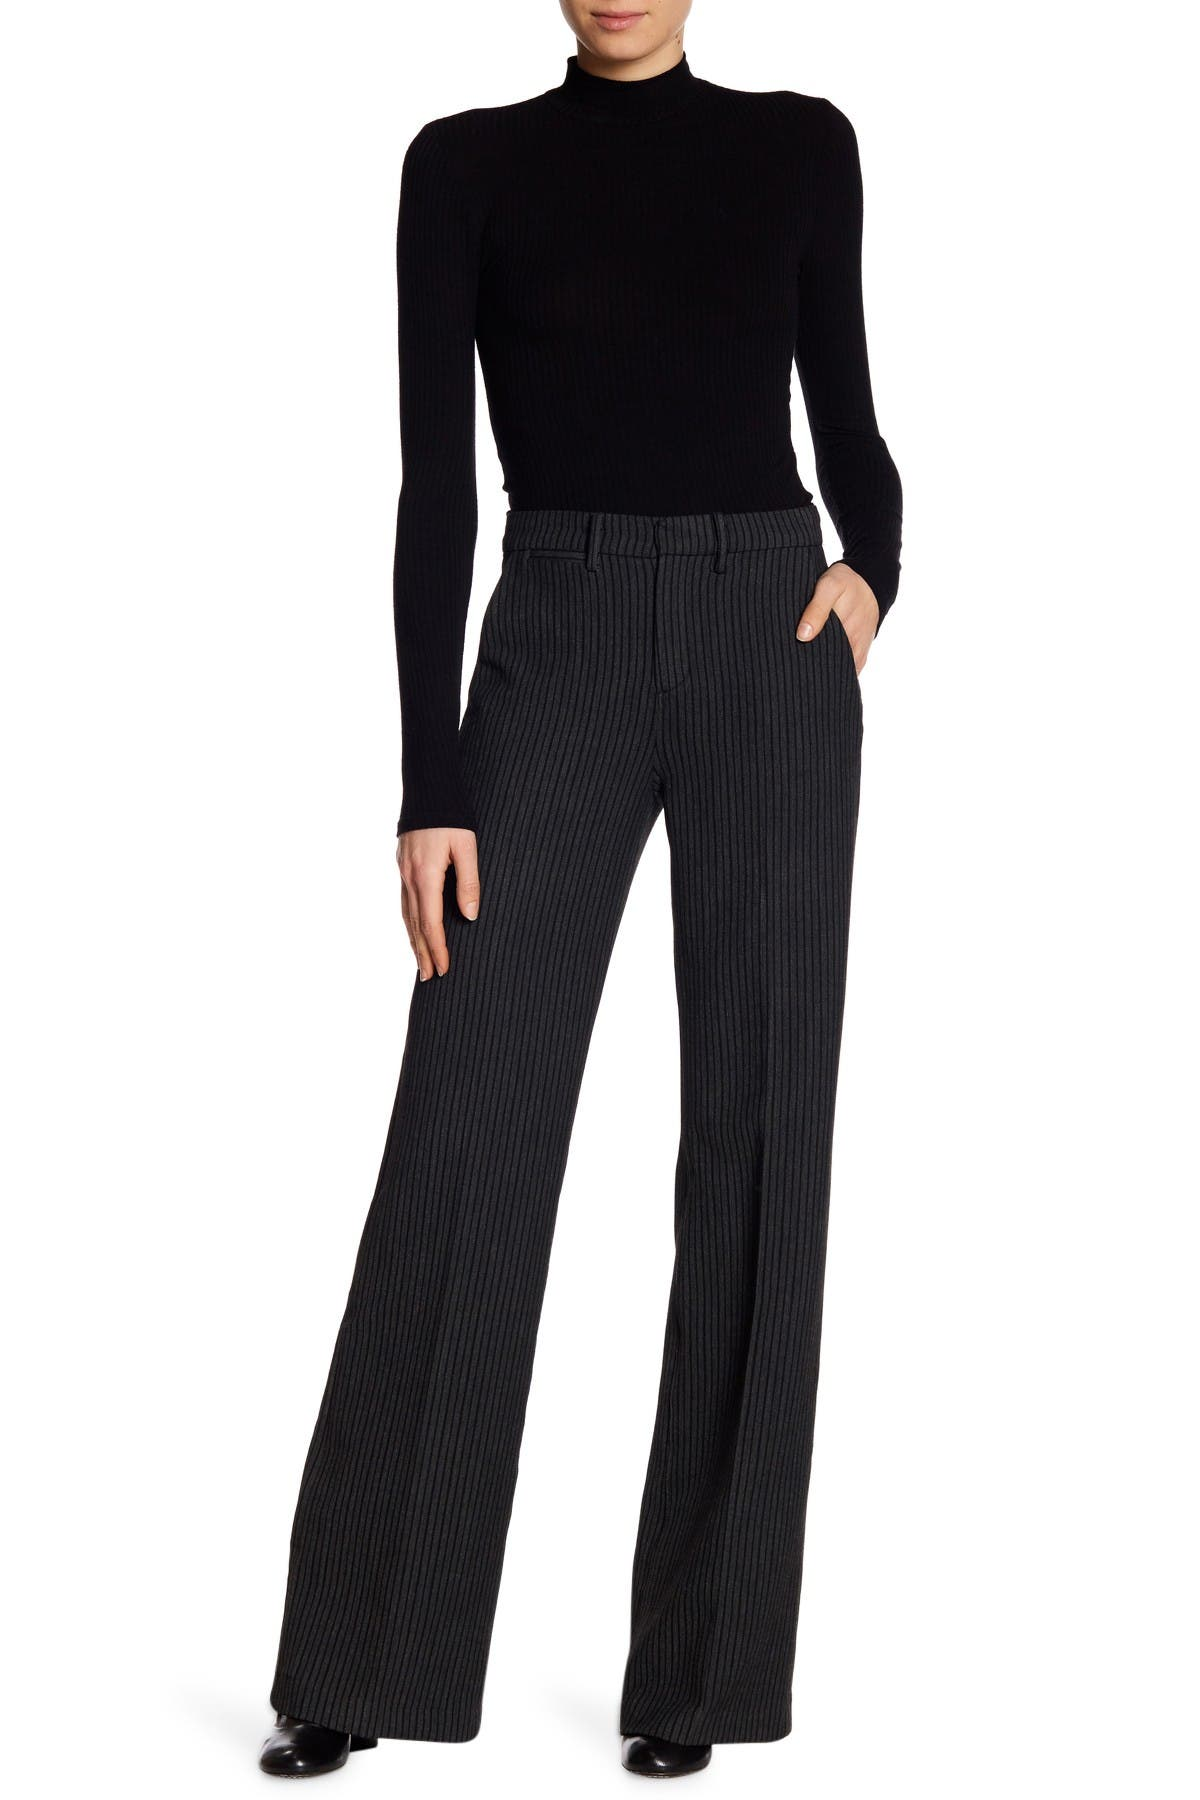 Image of AG Skylar High Rise Wide Trousers